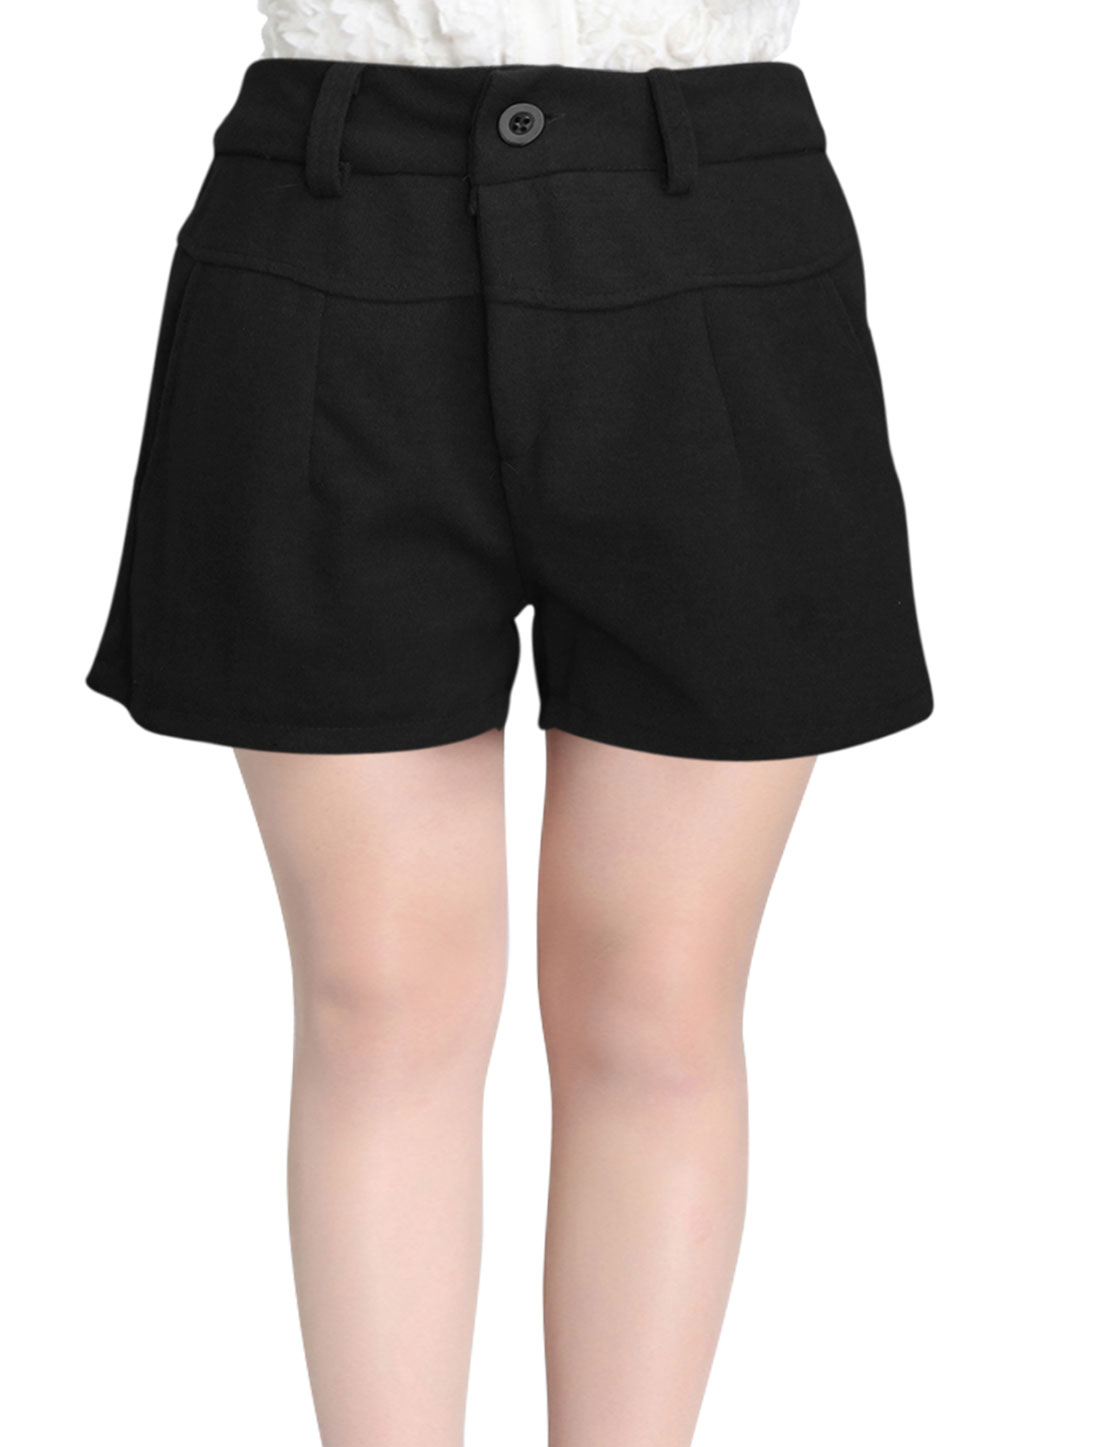 Natural Waist One Button Zip Fly Casual Short Pants for Women Black S